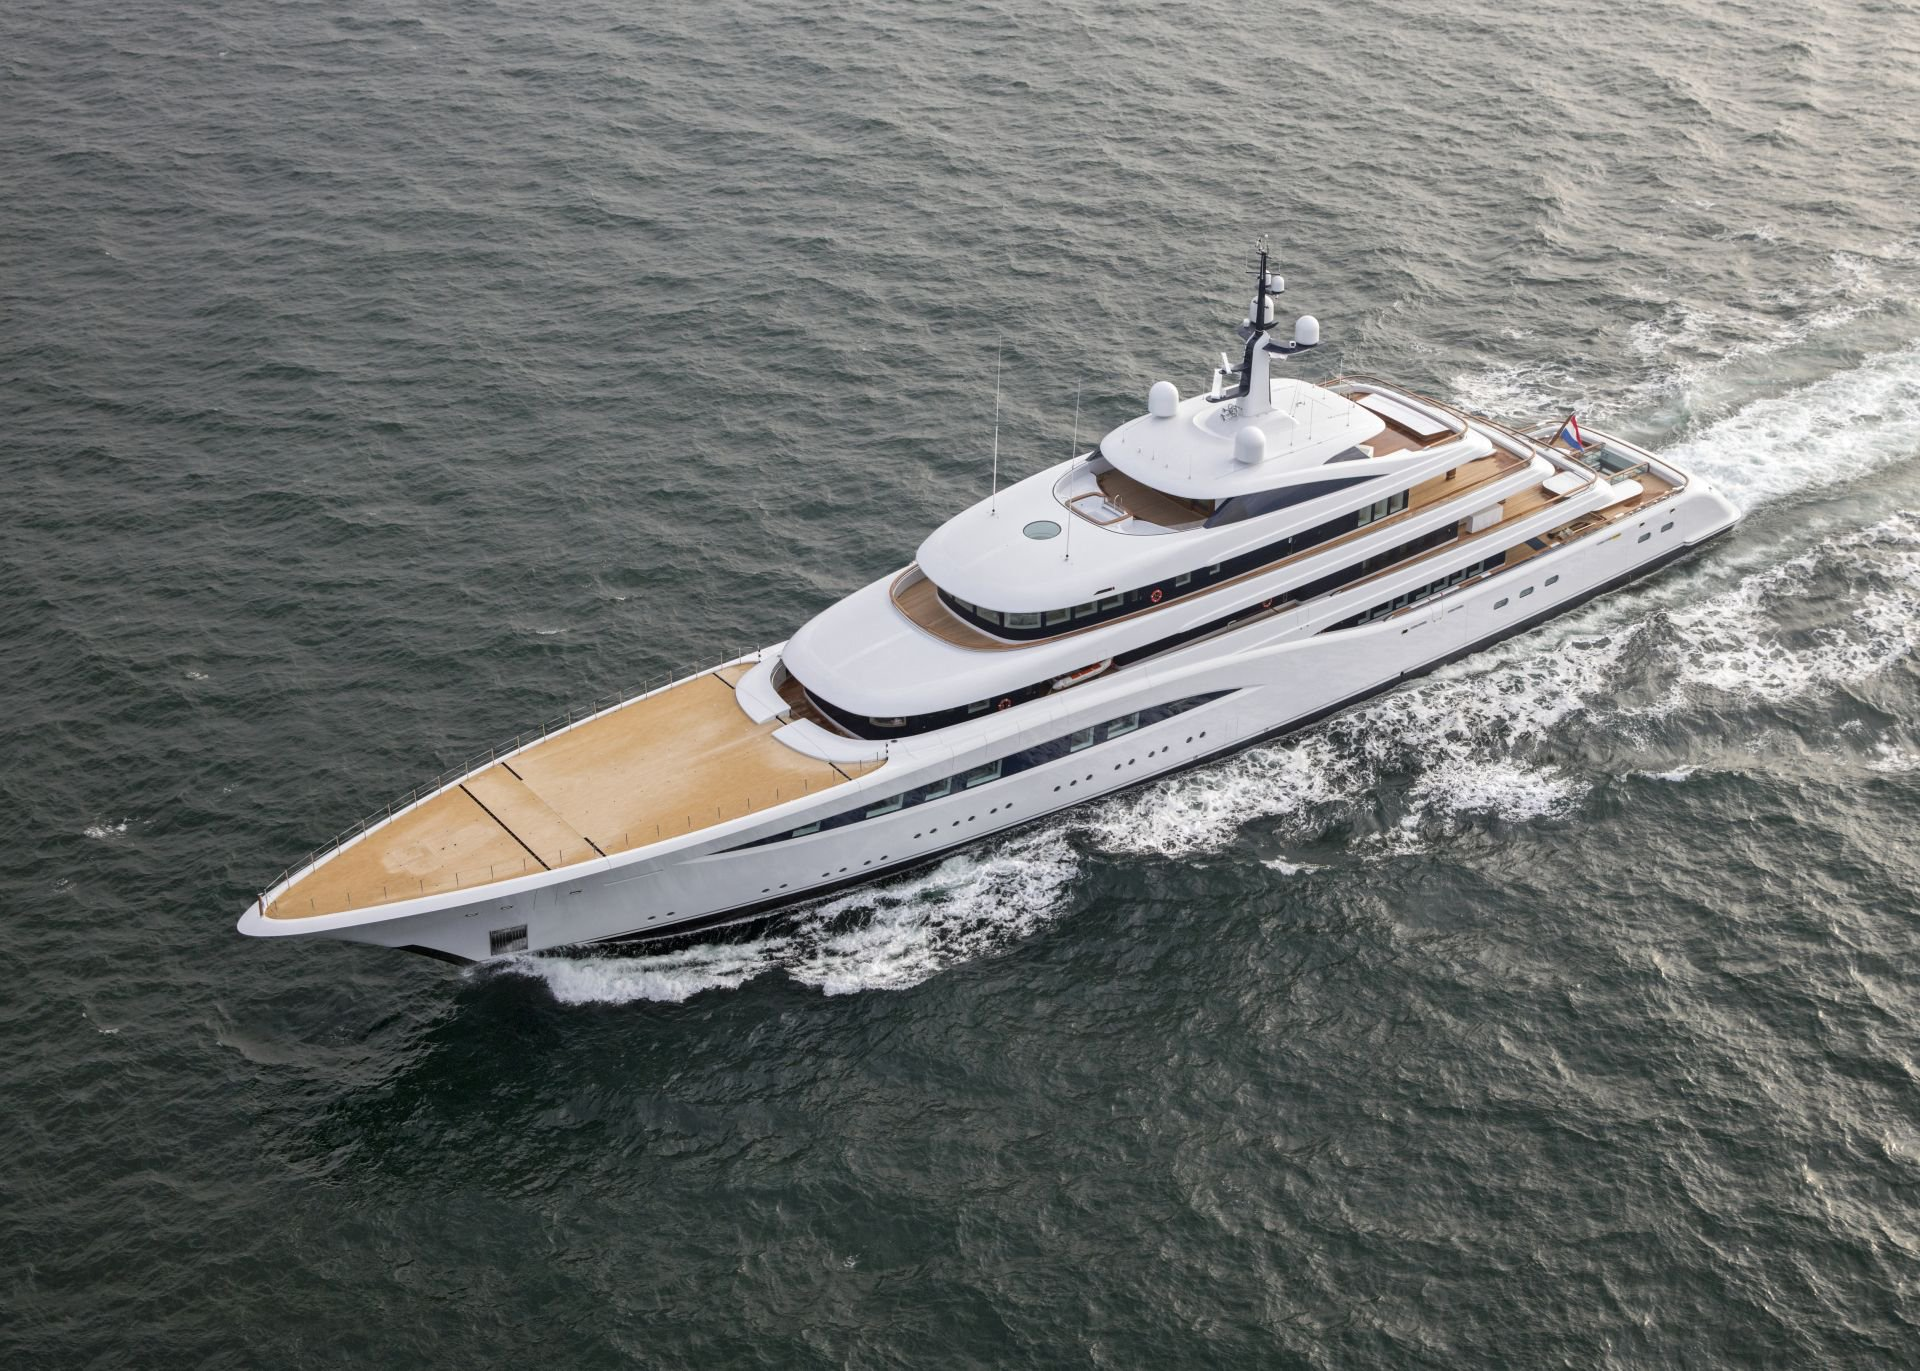 /data/MediaLibrary/articles/13493/1feadship-kopia.jpg